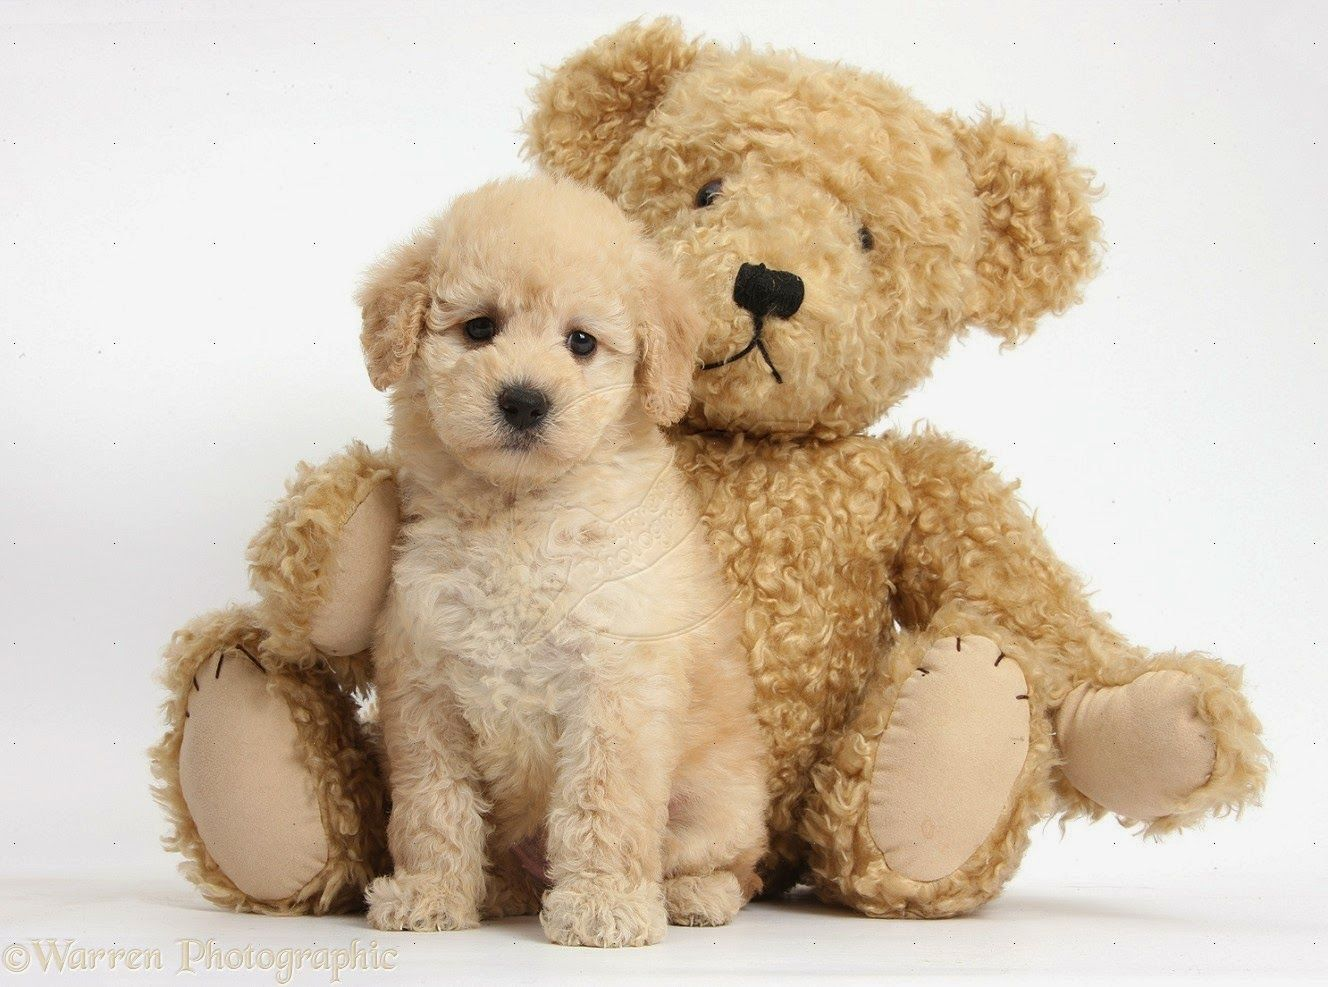 Shichon puppies for sale in kentucky - Shichon Teddy Bear Puppies For Sale Winter Season Safety Tips